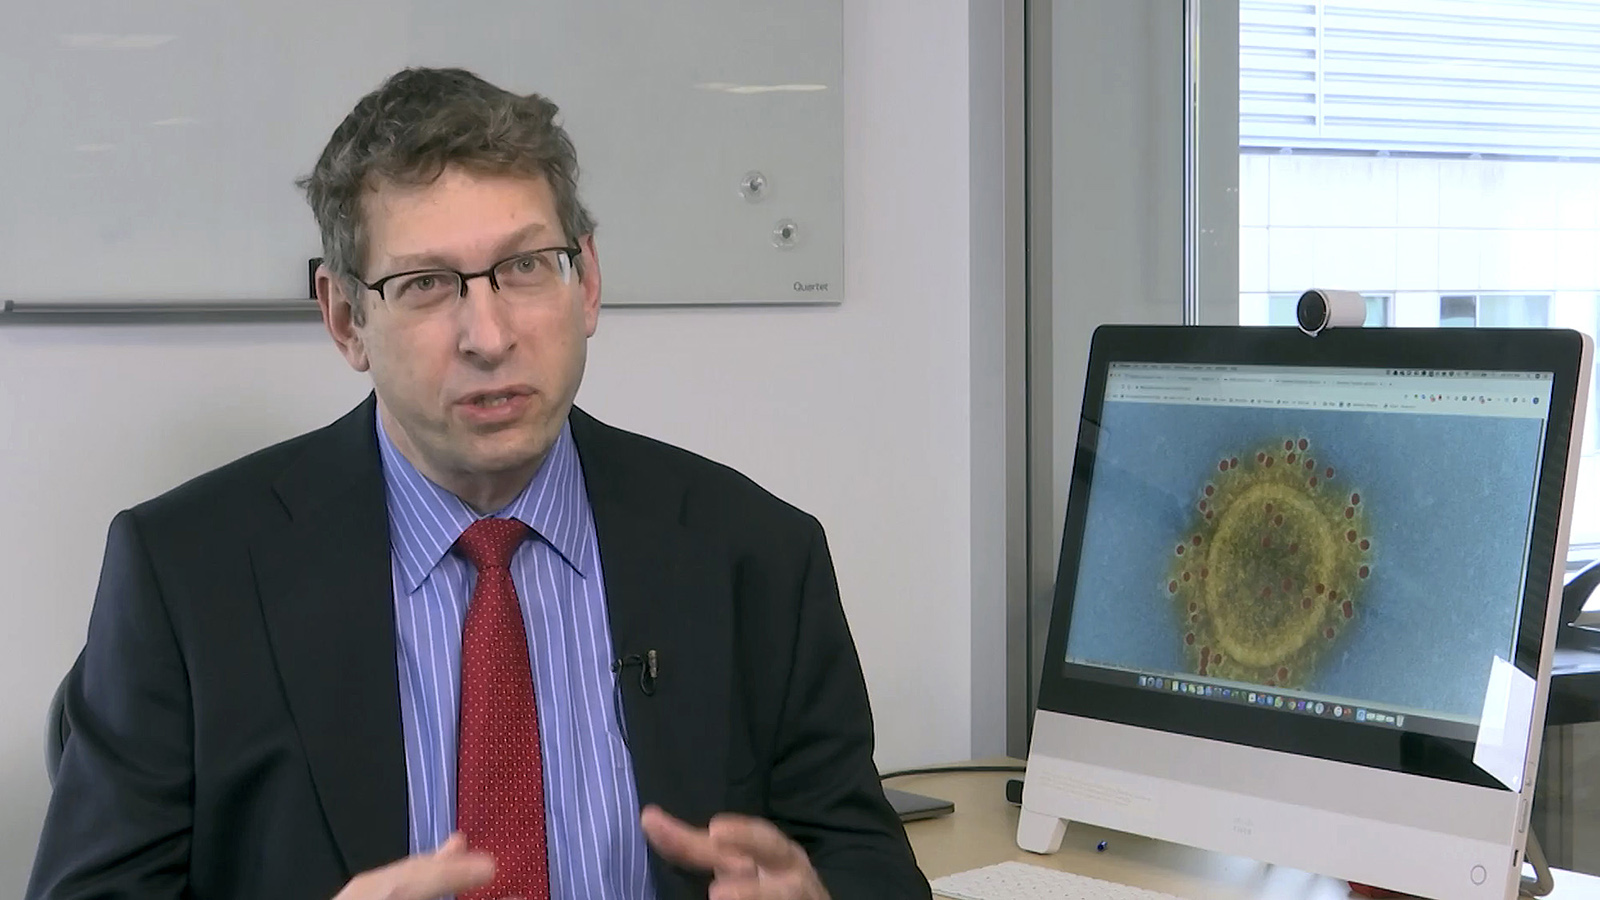 In this January 27, still image from video, Moderna Chief Medical Officer Tal Zaks speaks during an interview at the company headquarters in Cambridge, Mass.